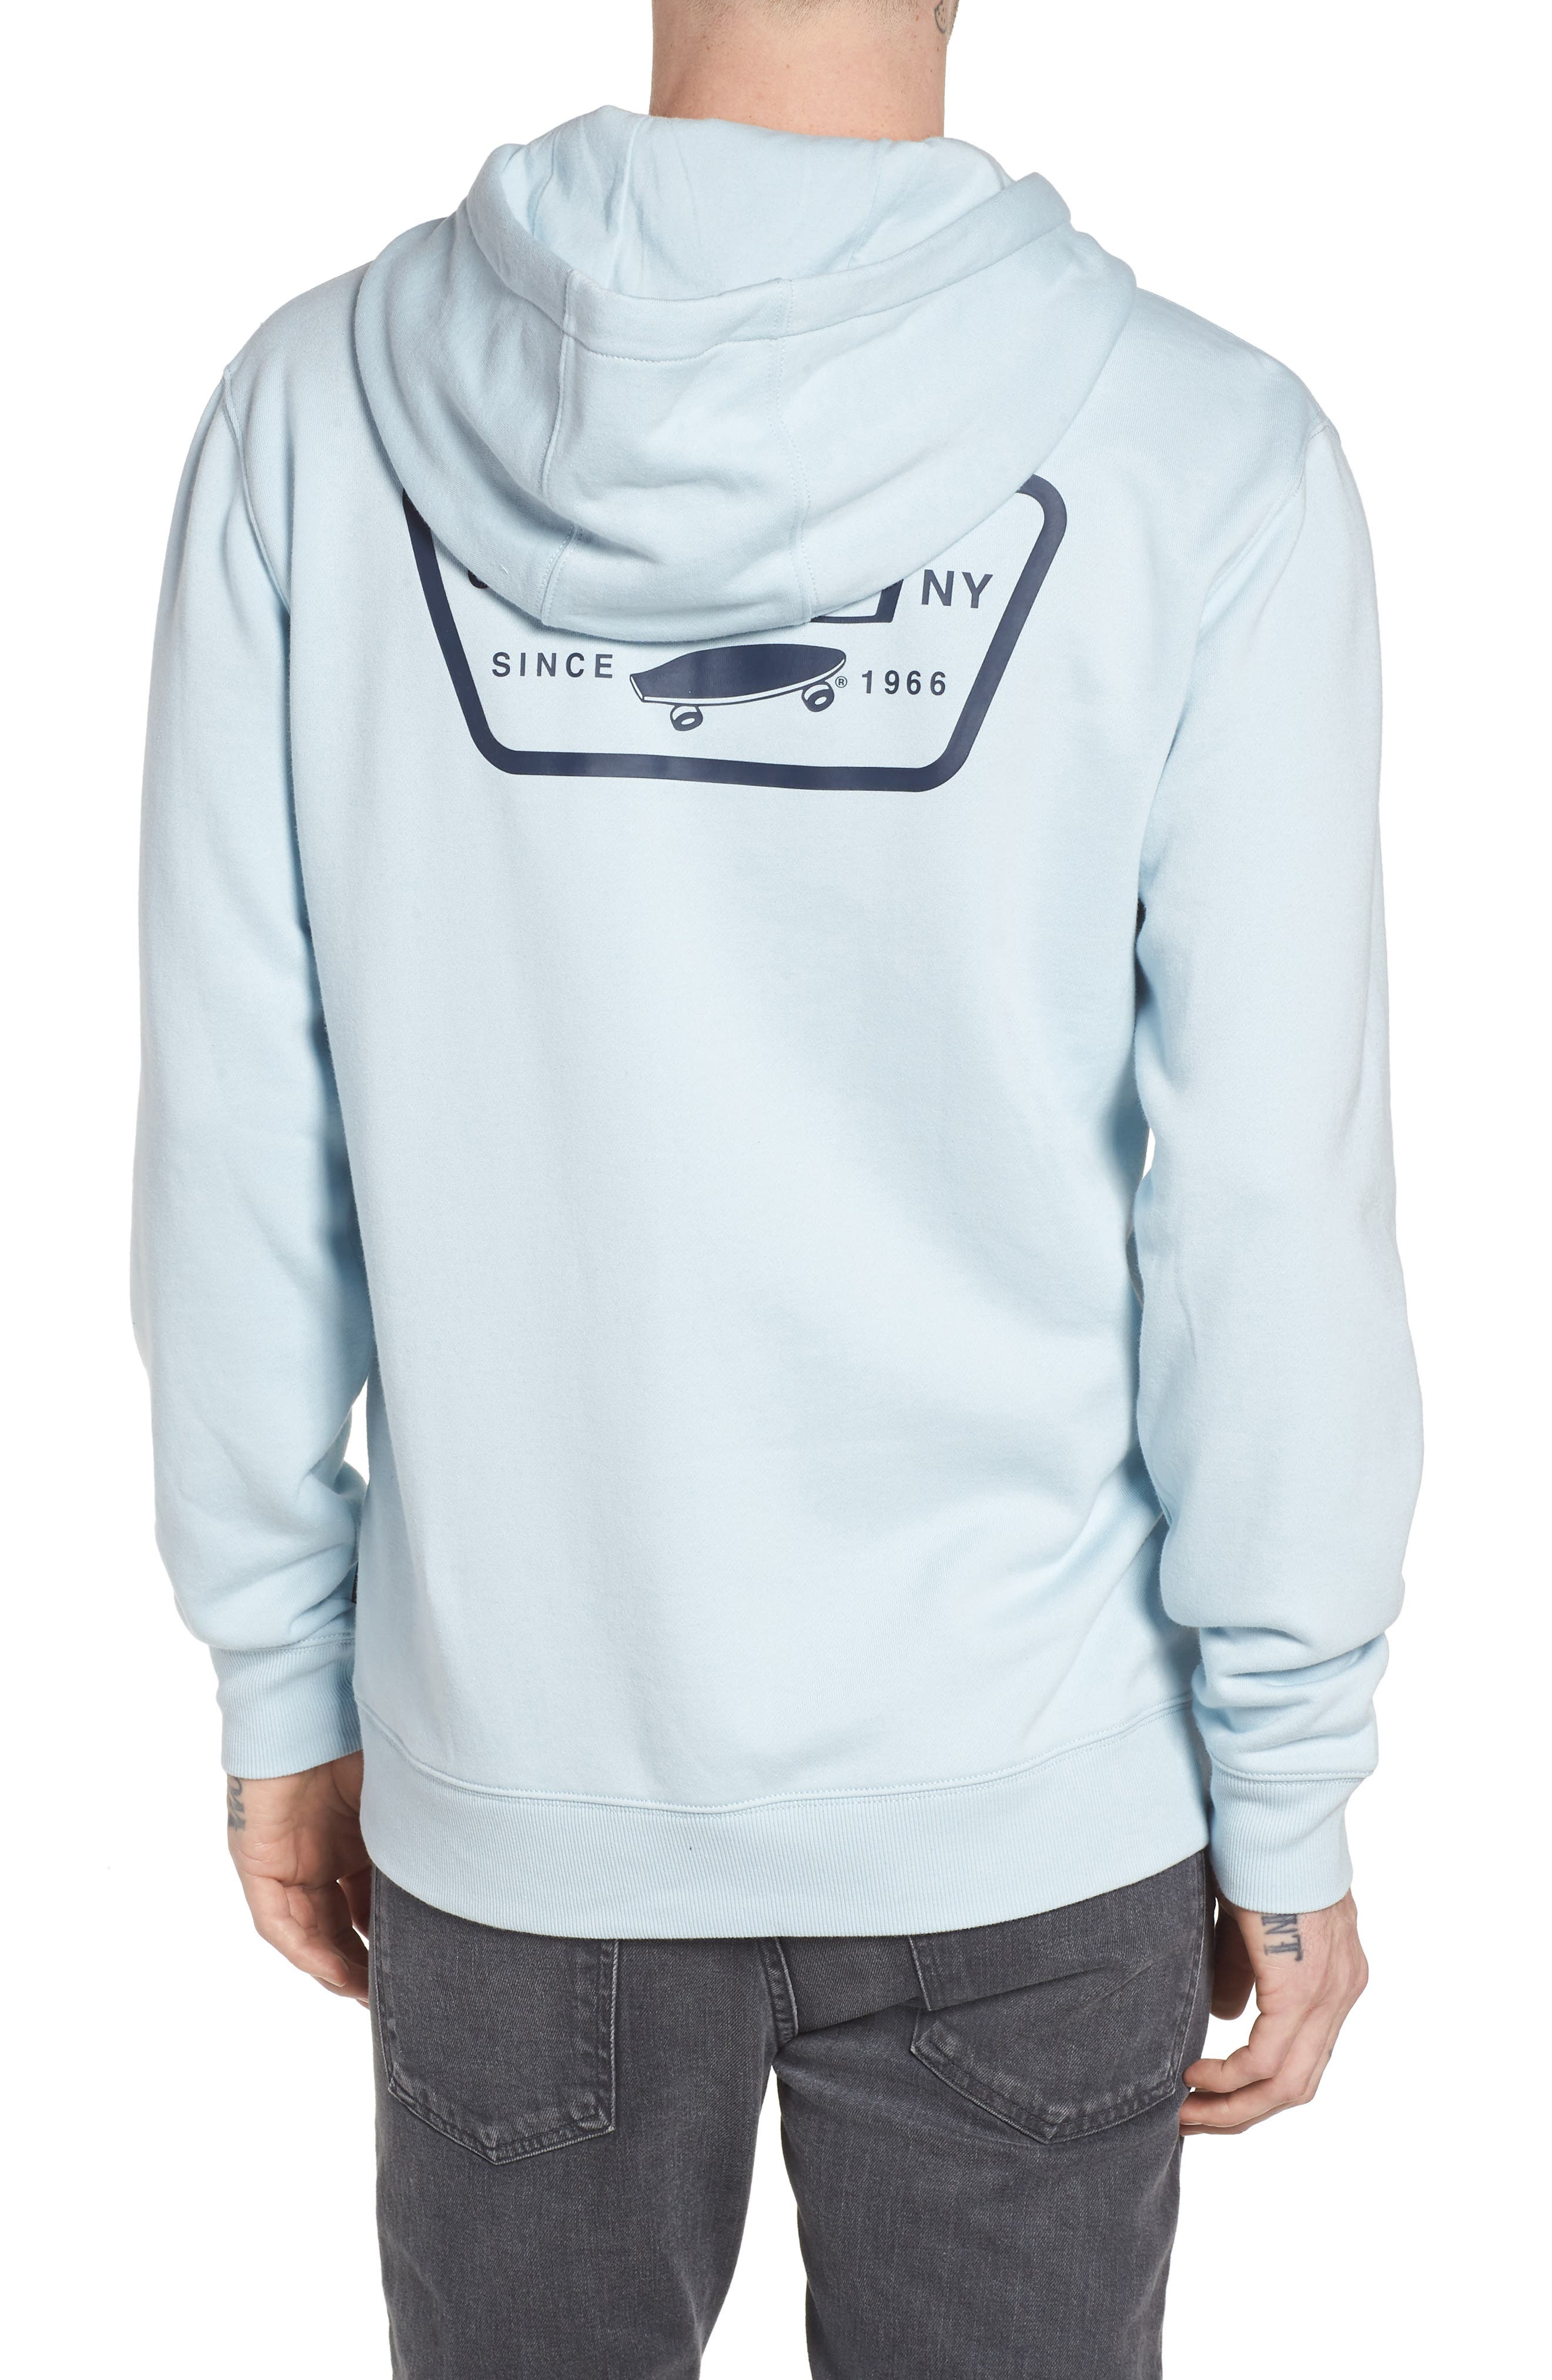 Full Patched Hoodie Sweatshirt,                             Alternate thumbnail 2, color,                             Baby Blue